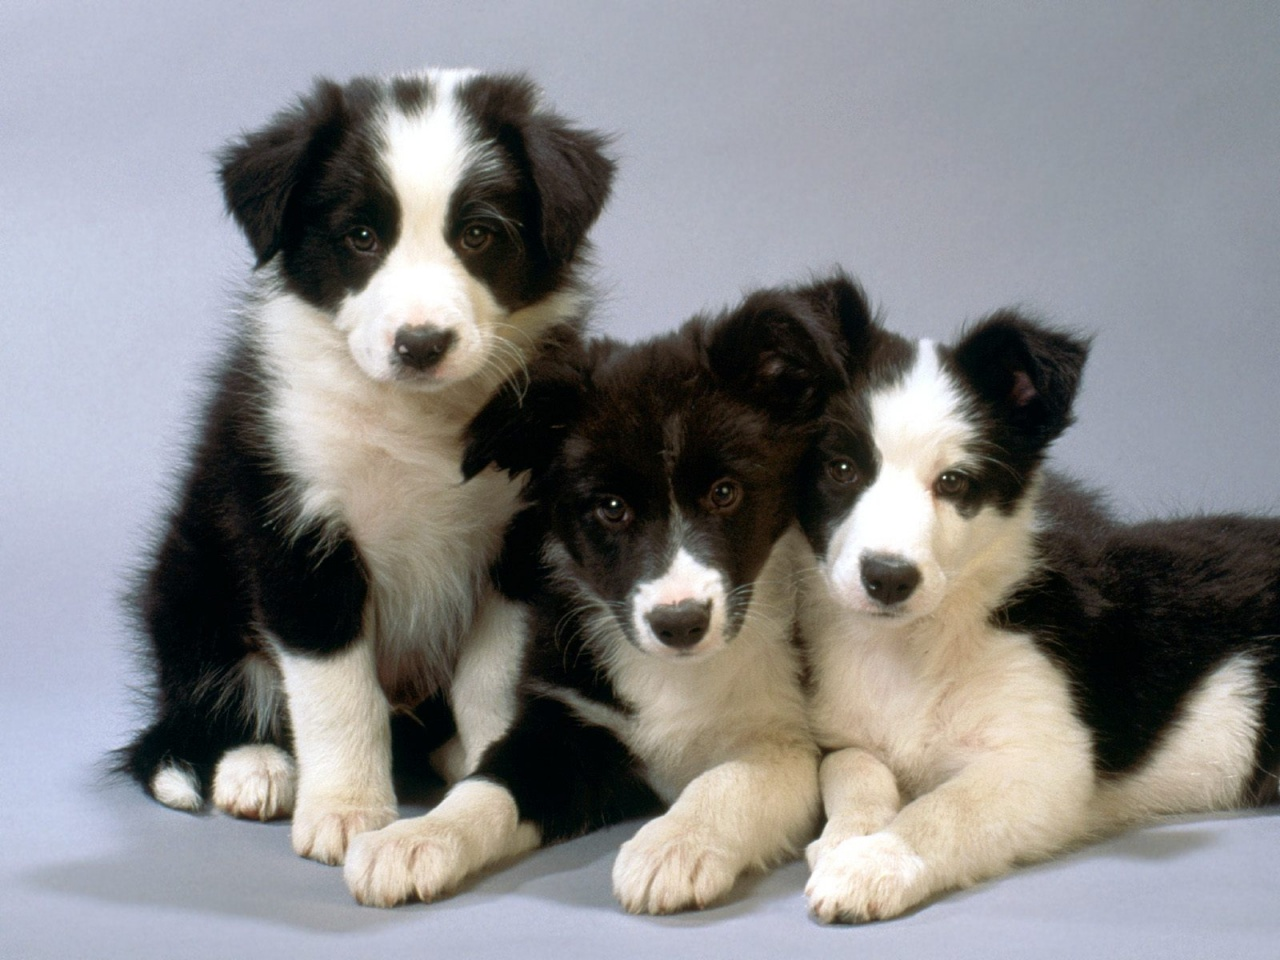 My Dreams...: Cute Pet Dogs Pictures & Images...